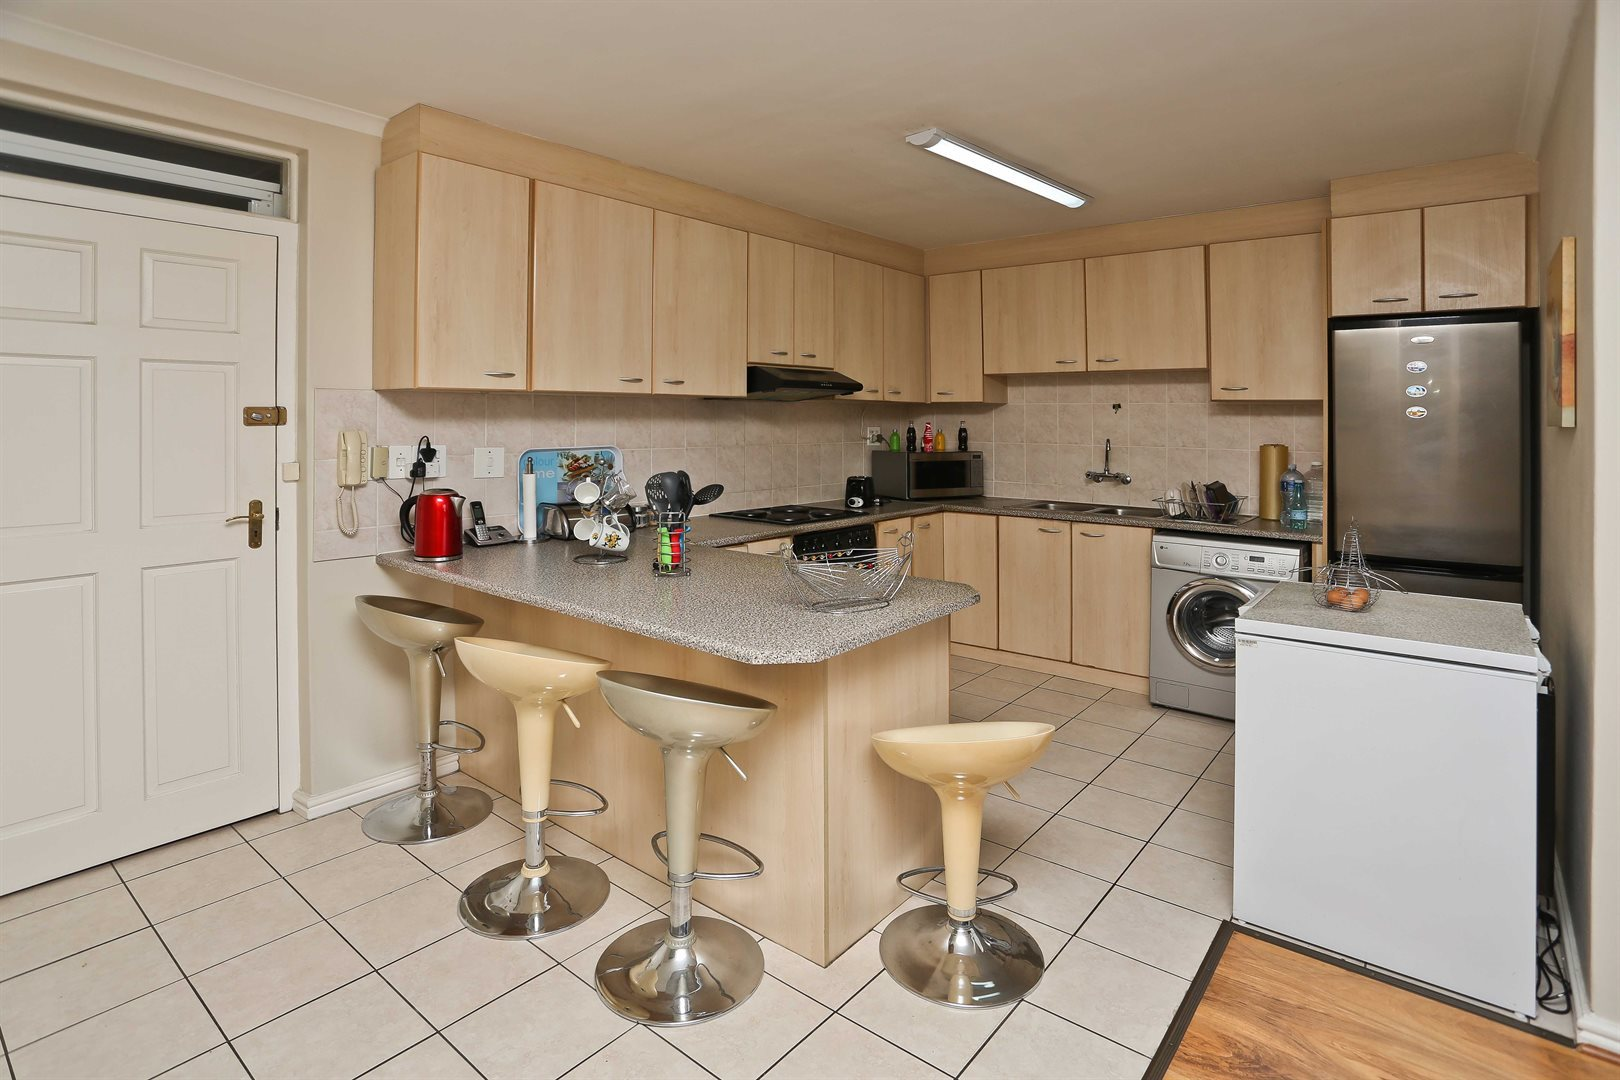 Apartment For Sale In Wynberg 2 Bedroom 13588624 4 30